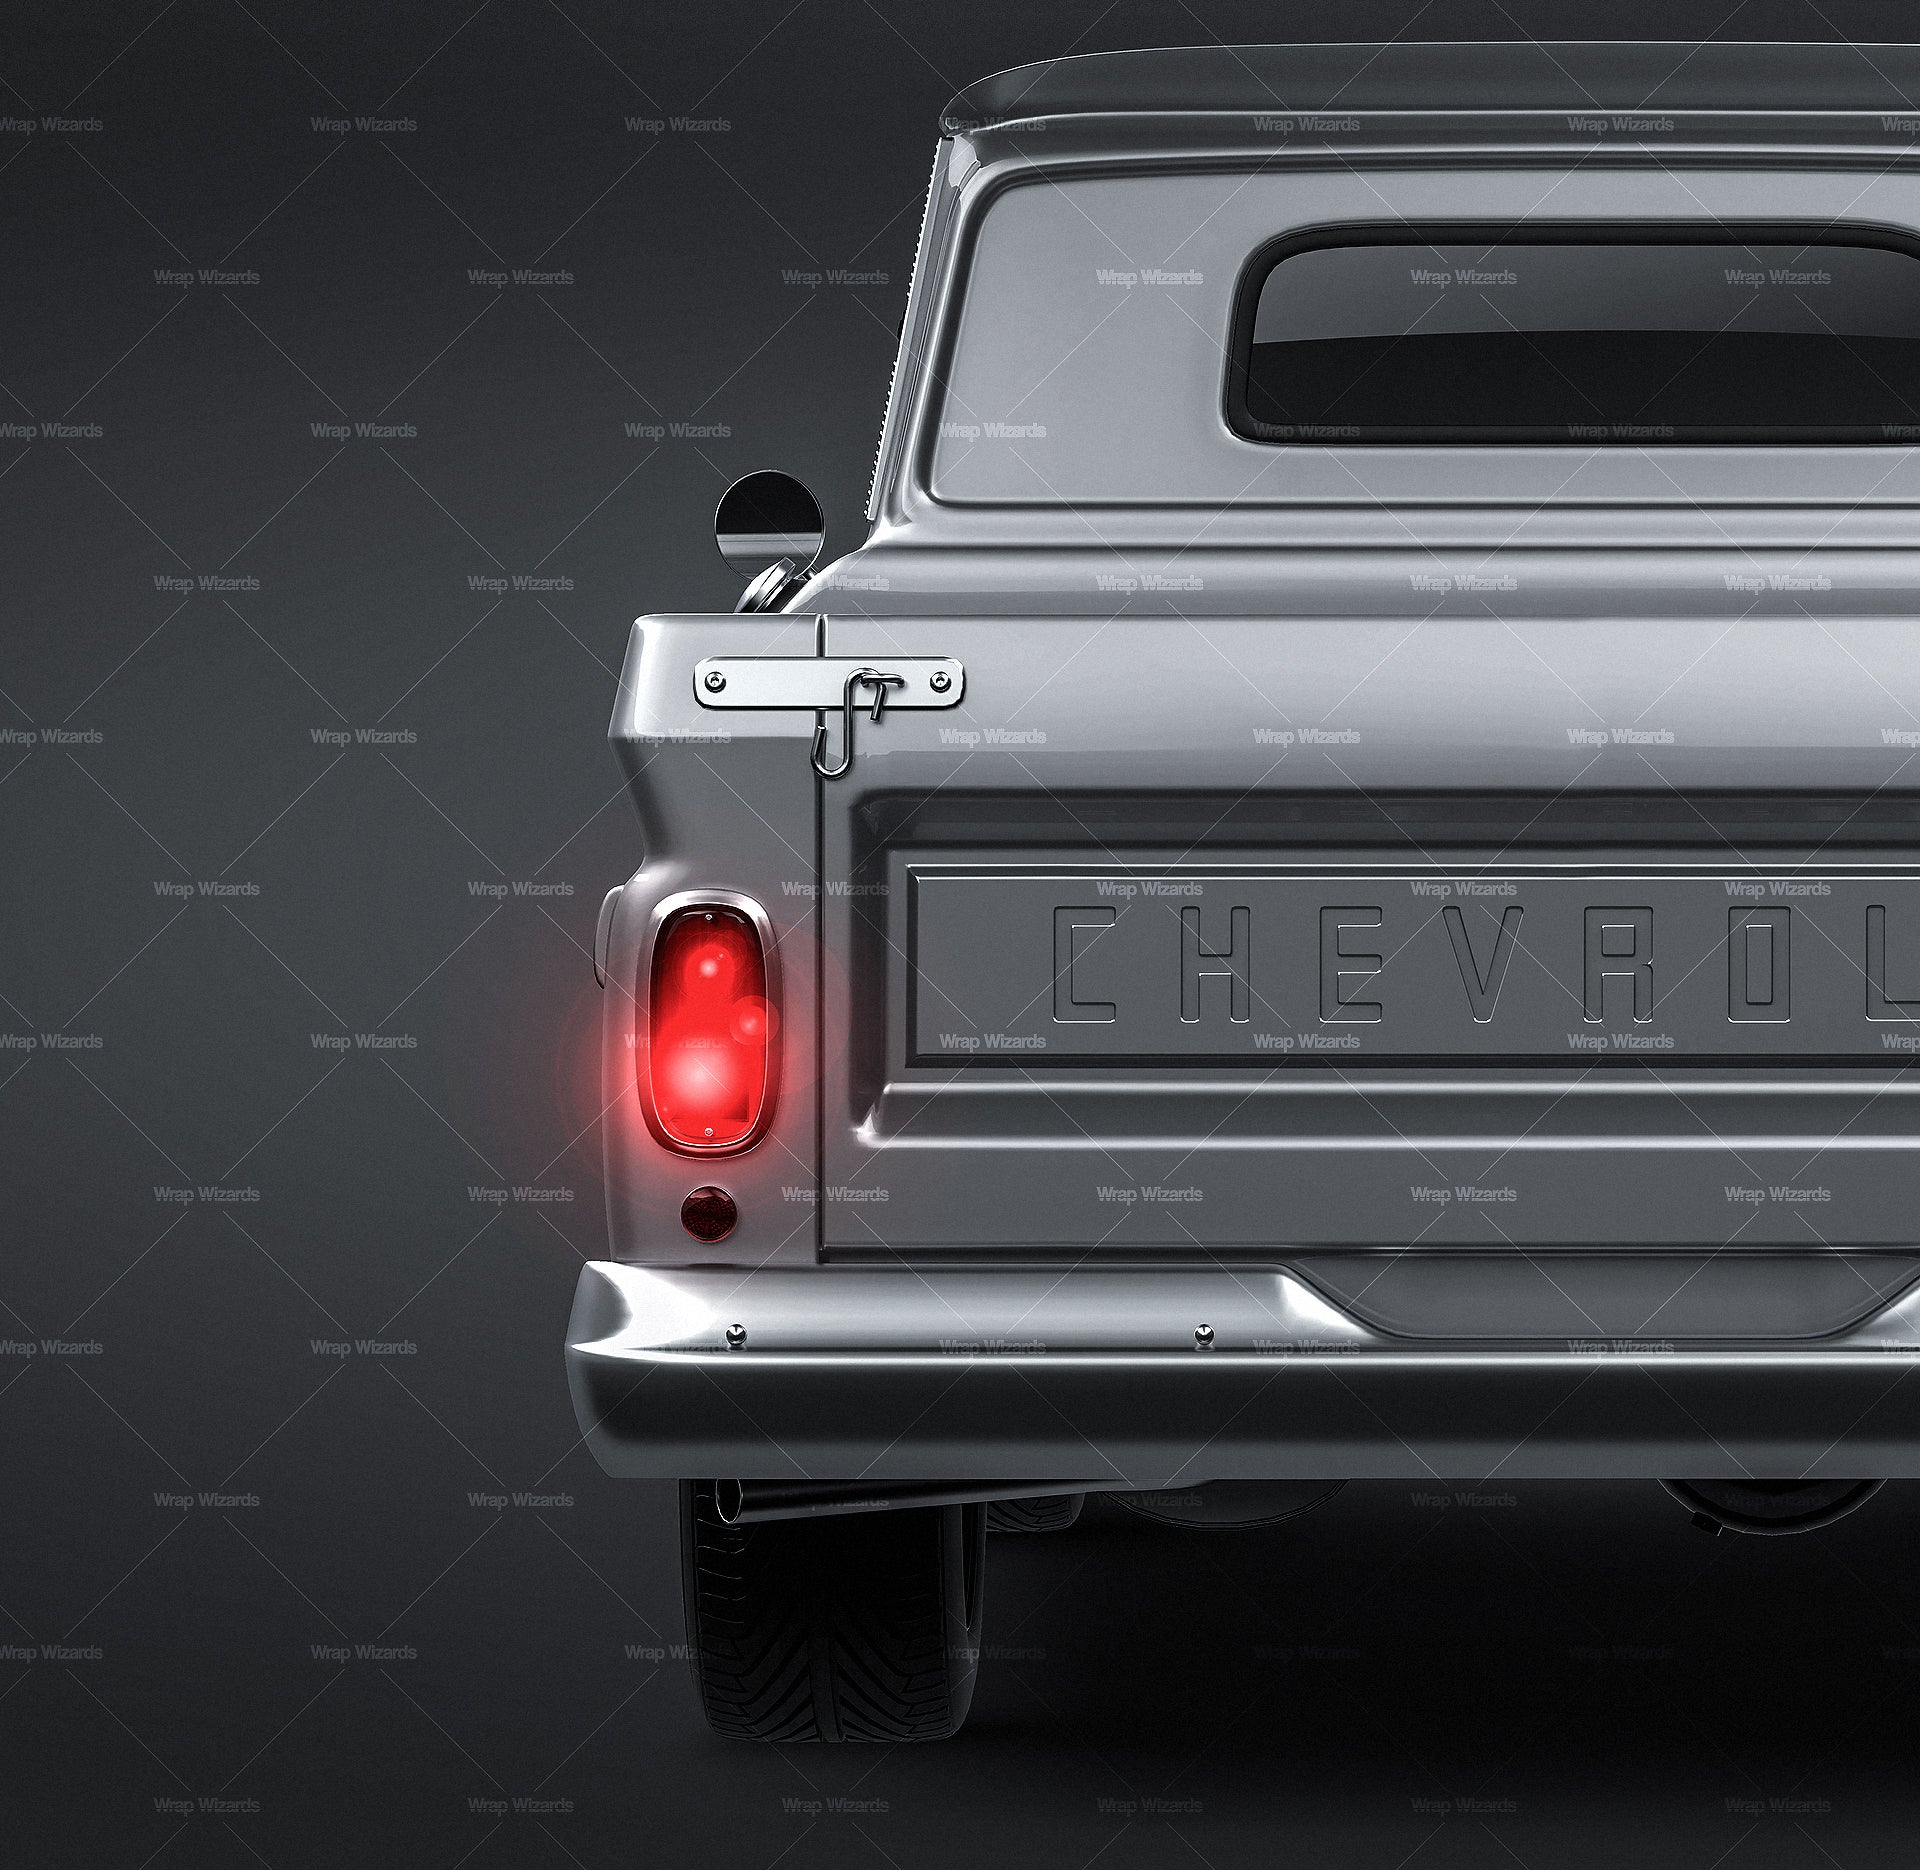 Chevrolet C10 1965 - all sides Car Mockup Template.psd